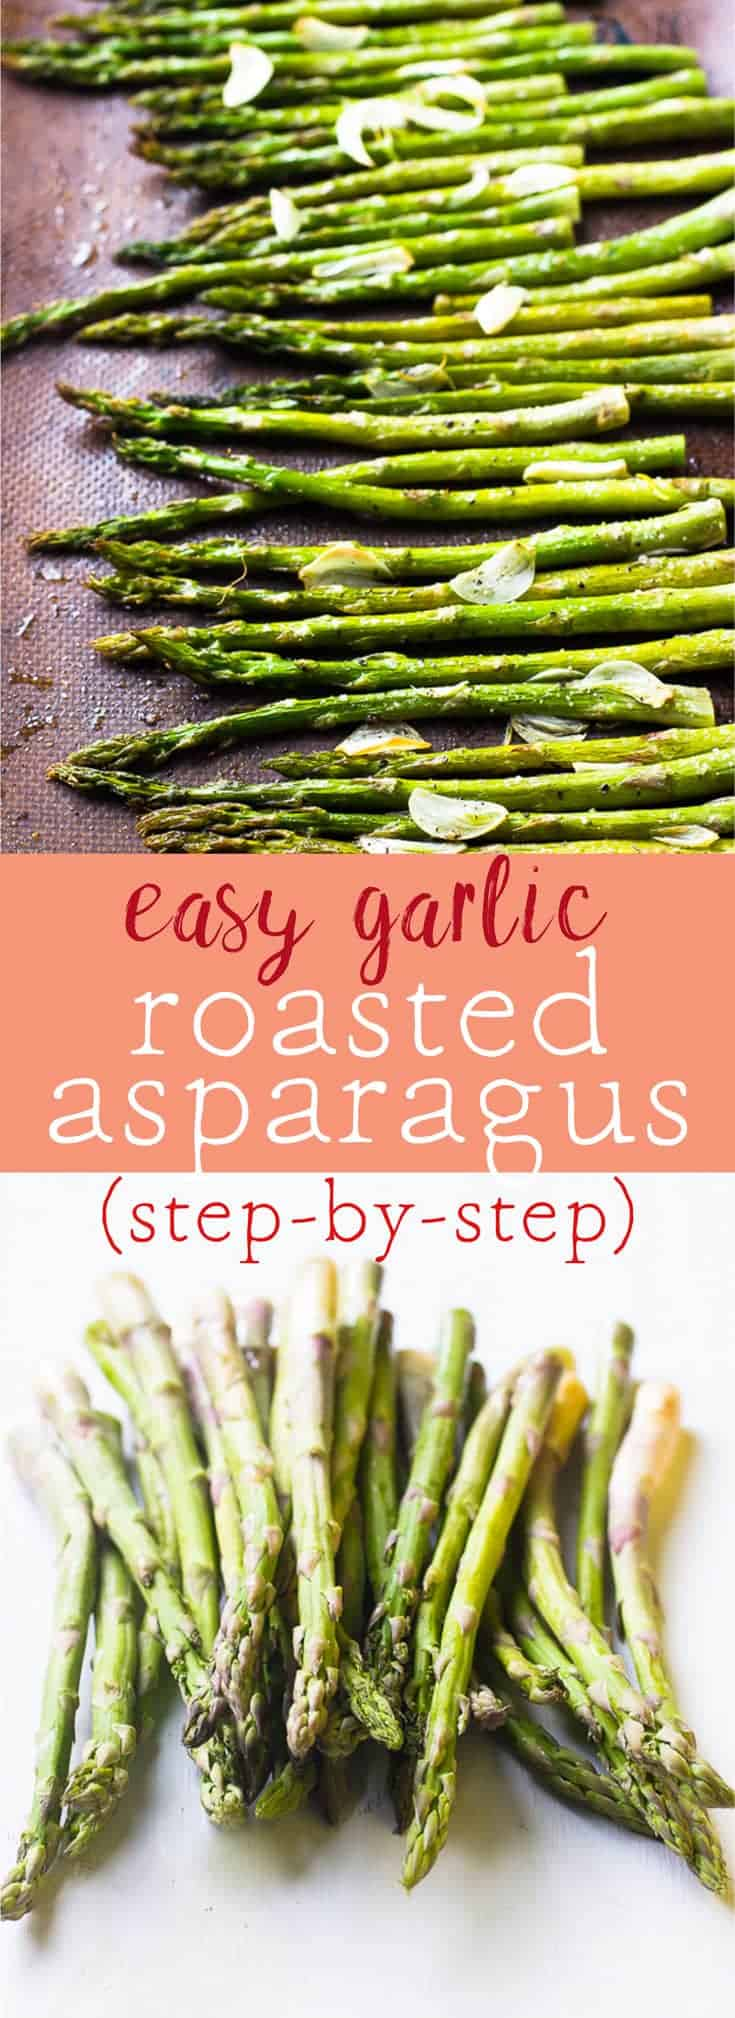 Garlic Roasted Asparagus is a must-make staple dish in my house. They are crunchy and flavourful. Here's a step-by-step how to guide for roasting asparagus. via https://jessicainthekitchen.com